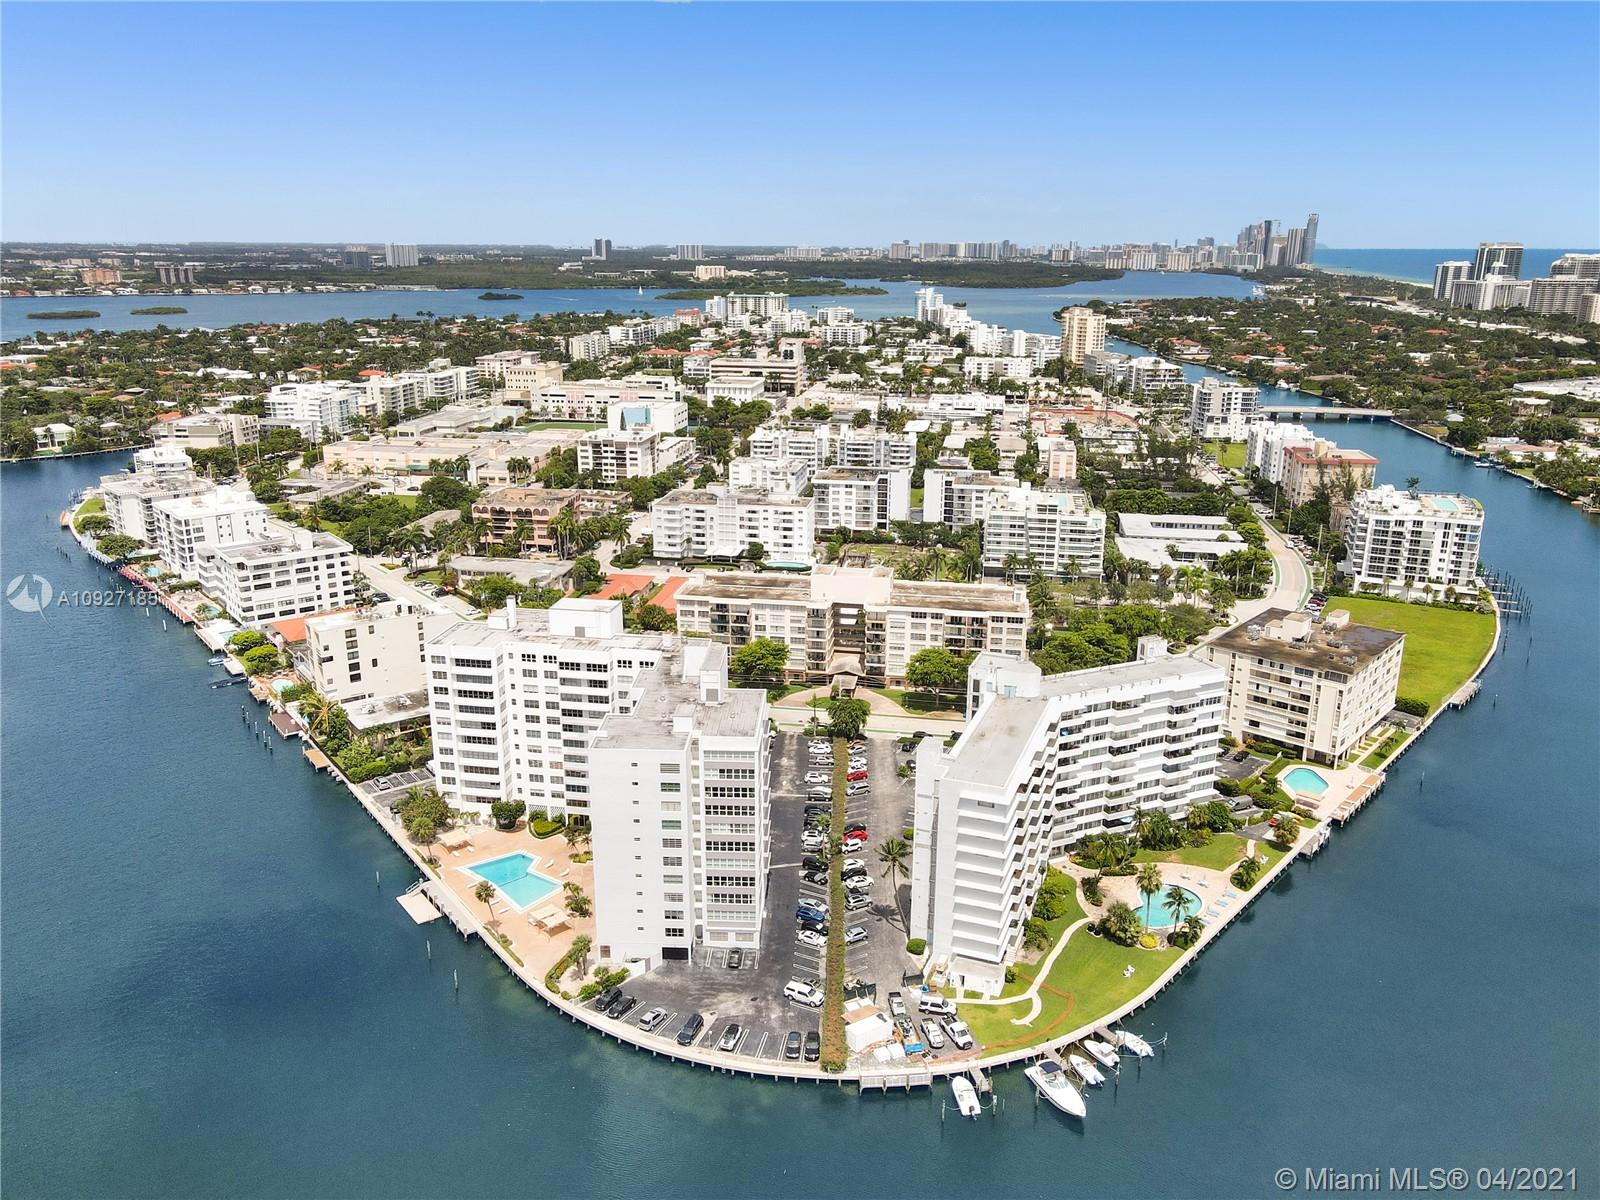 Fantastic Water Views!!Ocean and Bay! Waterfront MiMo Masterpiece Designed by Herbert A. Mathes This 2 bedroom, 2 Bath offers Bay front pool with kayak launch & storage area. The Mediterranean is being completely restored to it's original glory. This is a great apartment. Walk to stores and restaurants. Only 5 minutes to the beach.  One of Miami's very few walking neighborhoods with A-rated K-8 school and its own police dept.